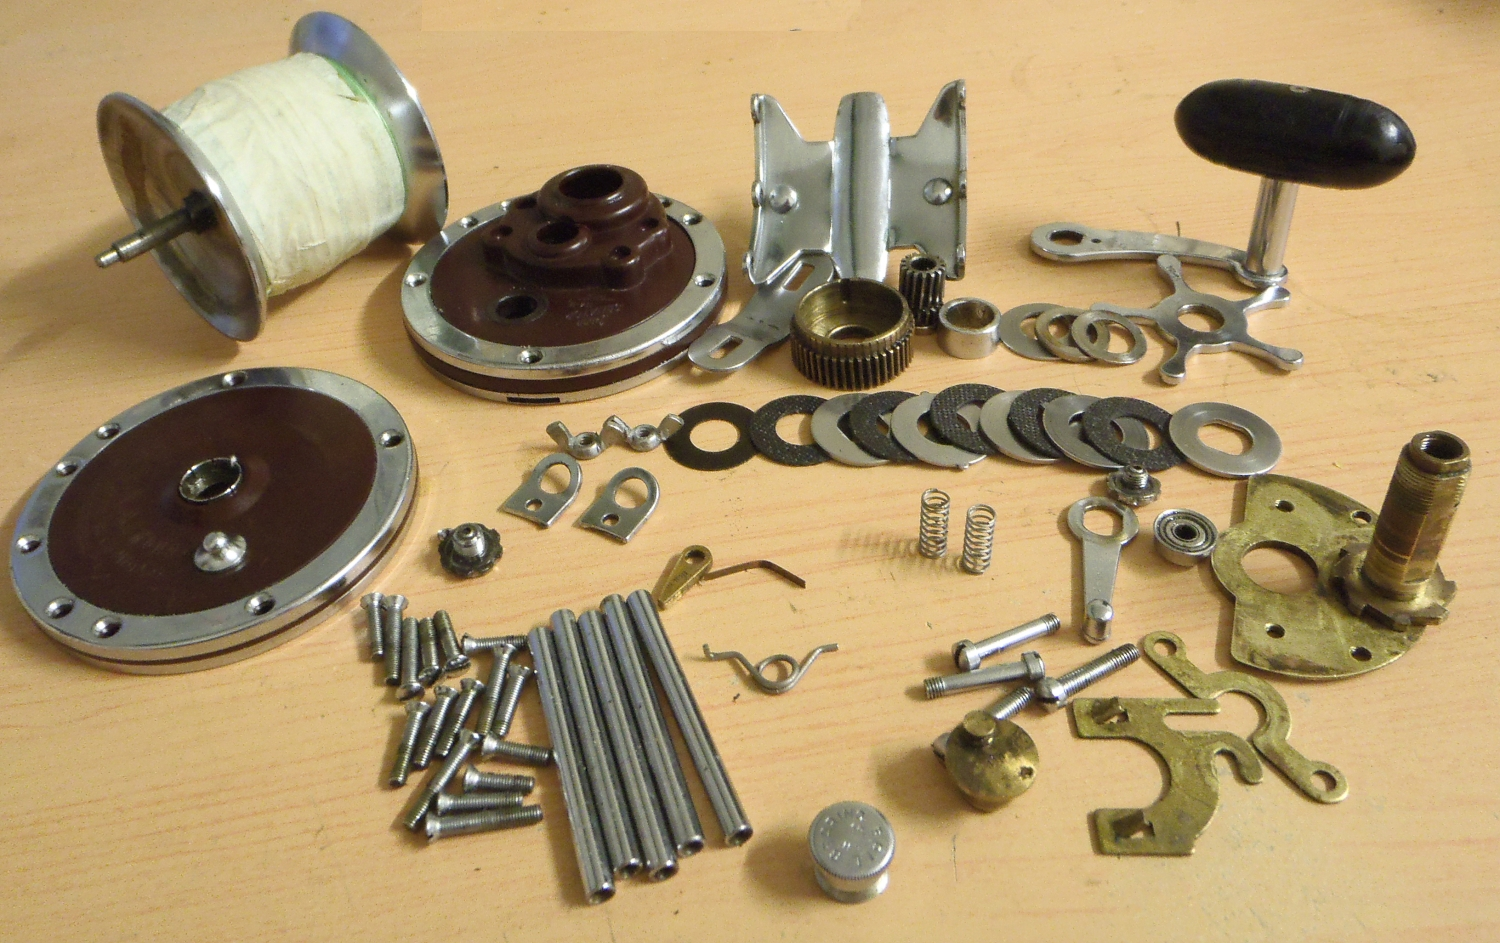 Penn 113h parts list and diagram ereplacementparts for Penn fishing reel parts